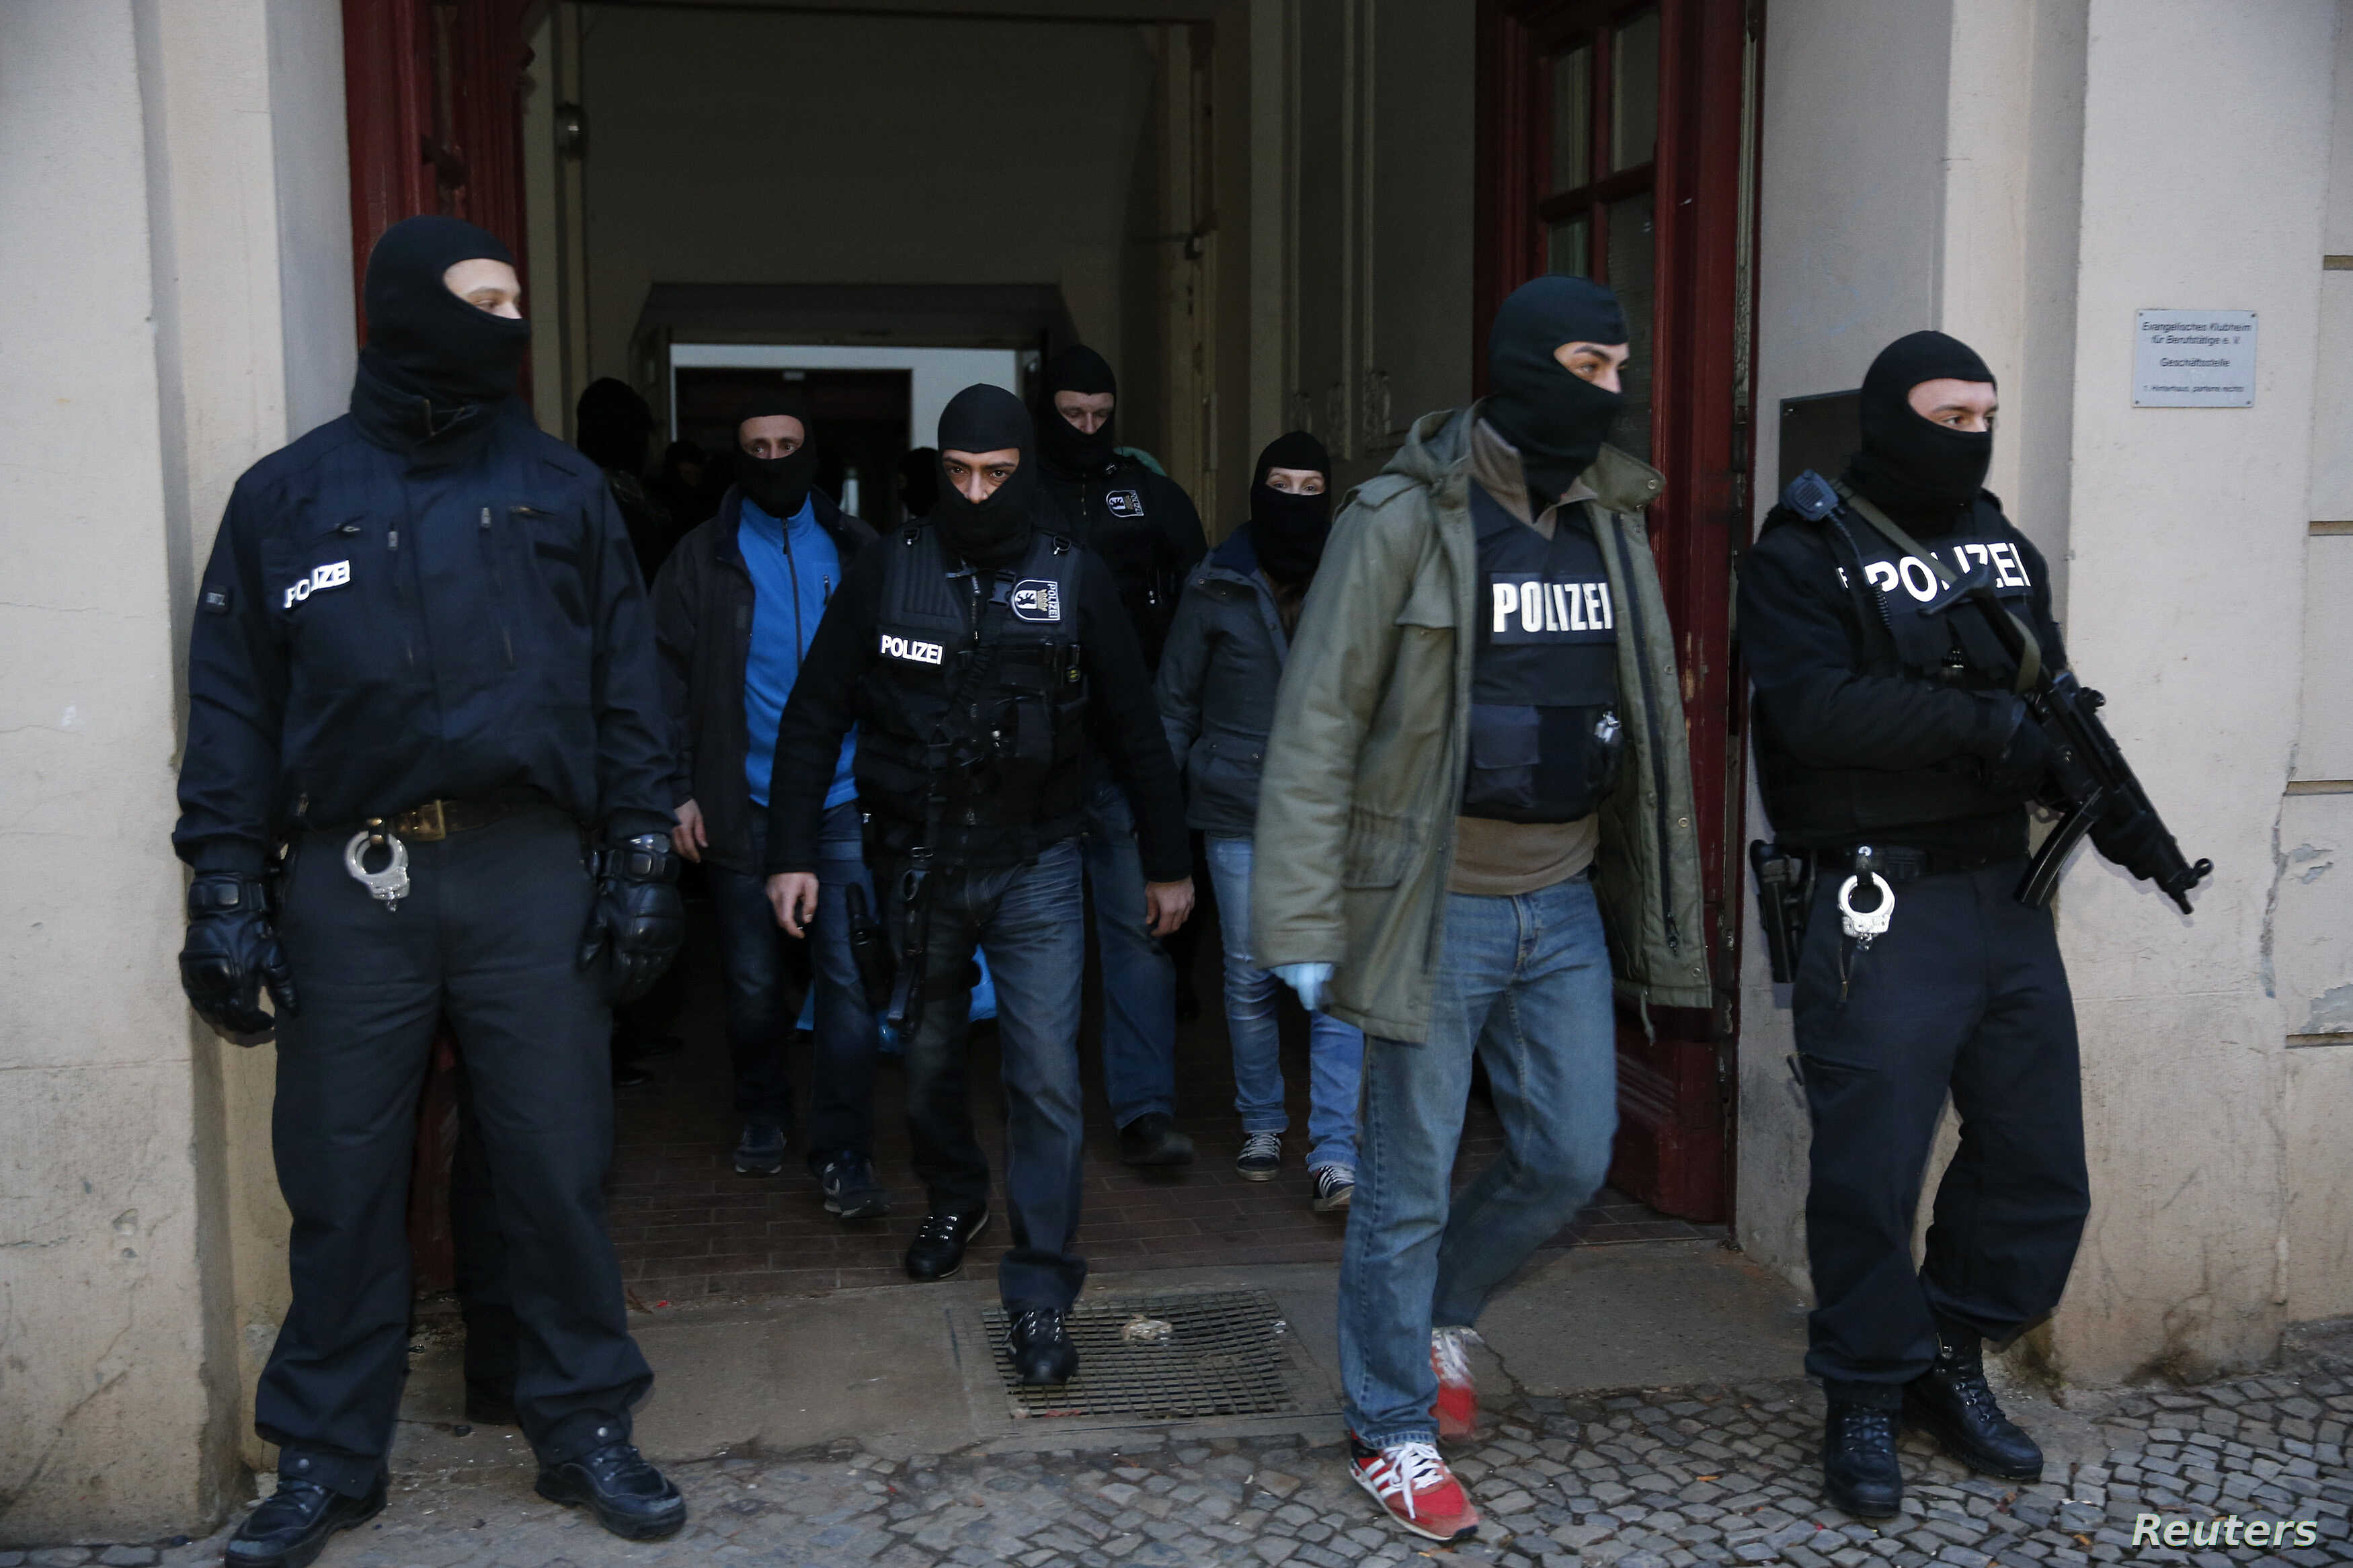 German special police units leave an apartment building in the Wedding district in Berlin January 16, 2015. Around 250 policemen took part in the raid and arrested two suspected Islamists, police said. REUTERS/Fabrizio Bensch (GERMANY - Tags: CIVIL U...